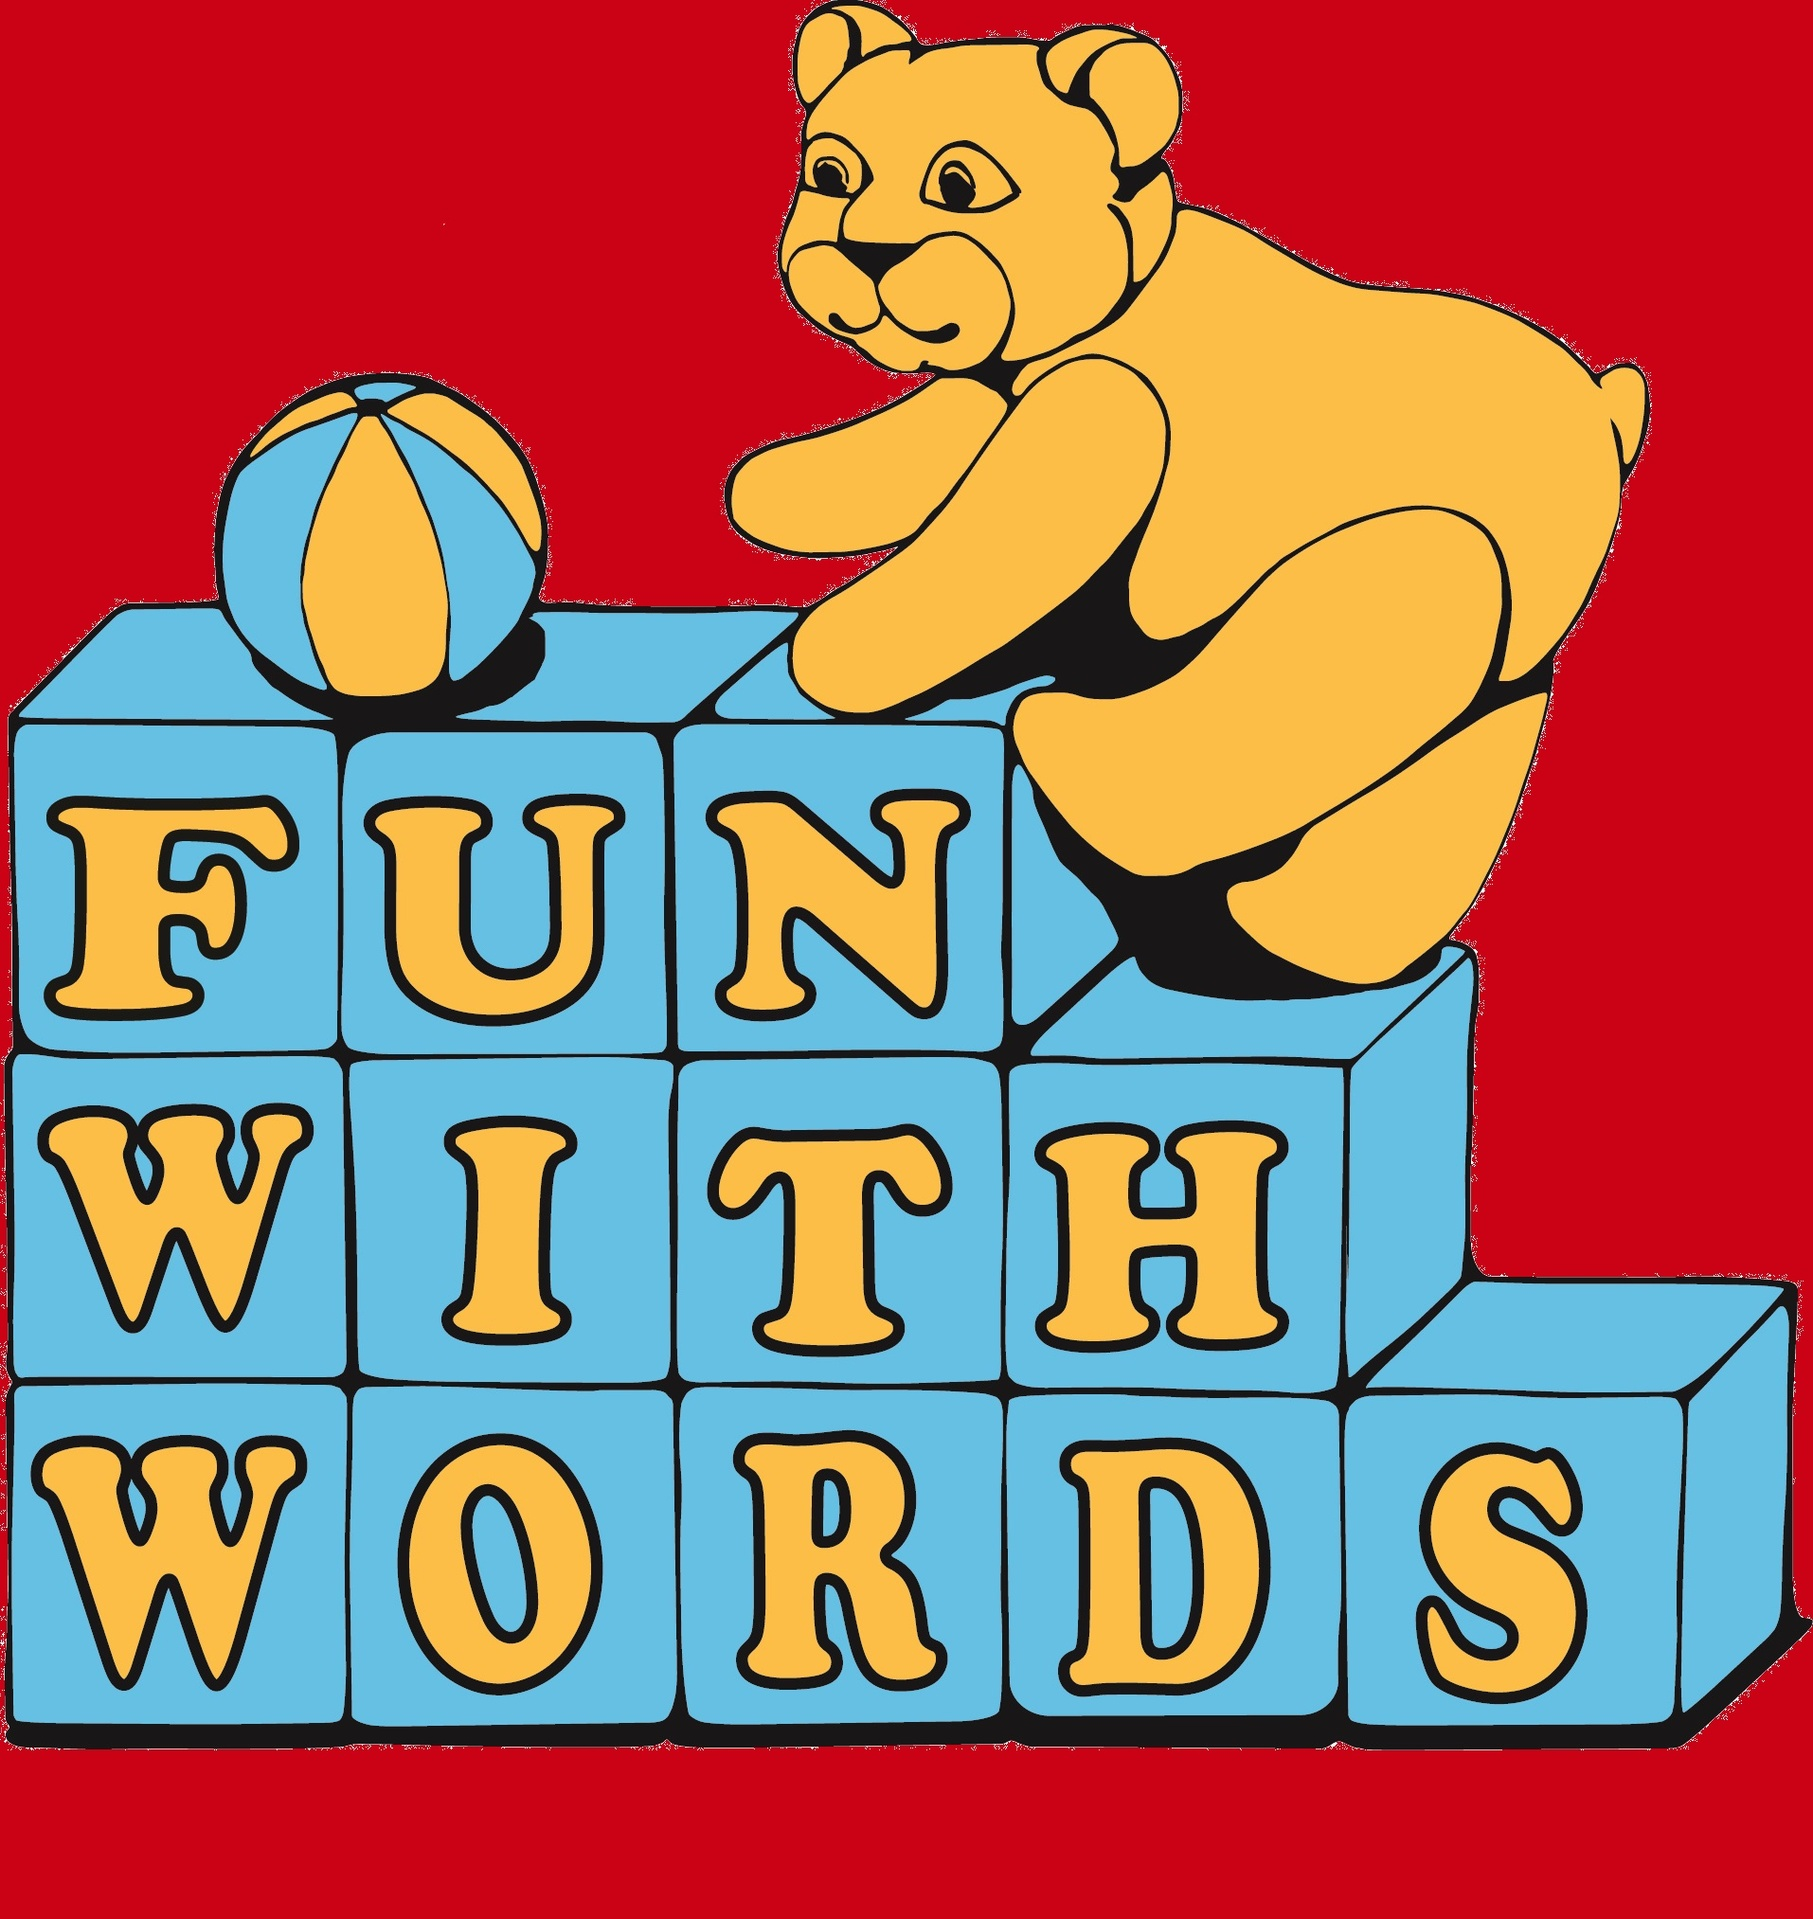 W words clipart picture transparent Speech therapy beenleigh - Fun With Words Speech Pathology picture transparent